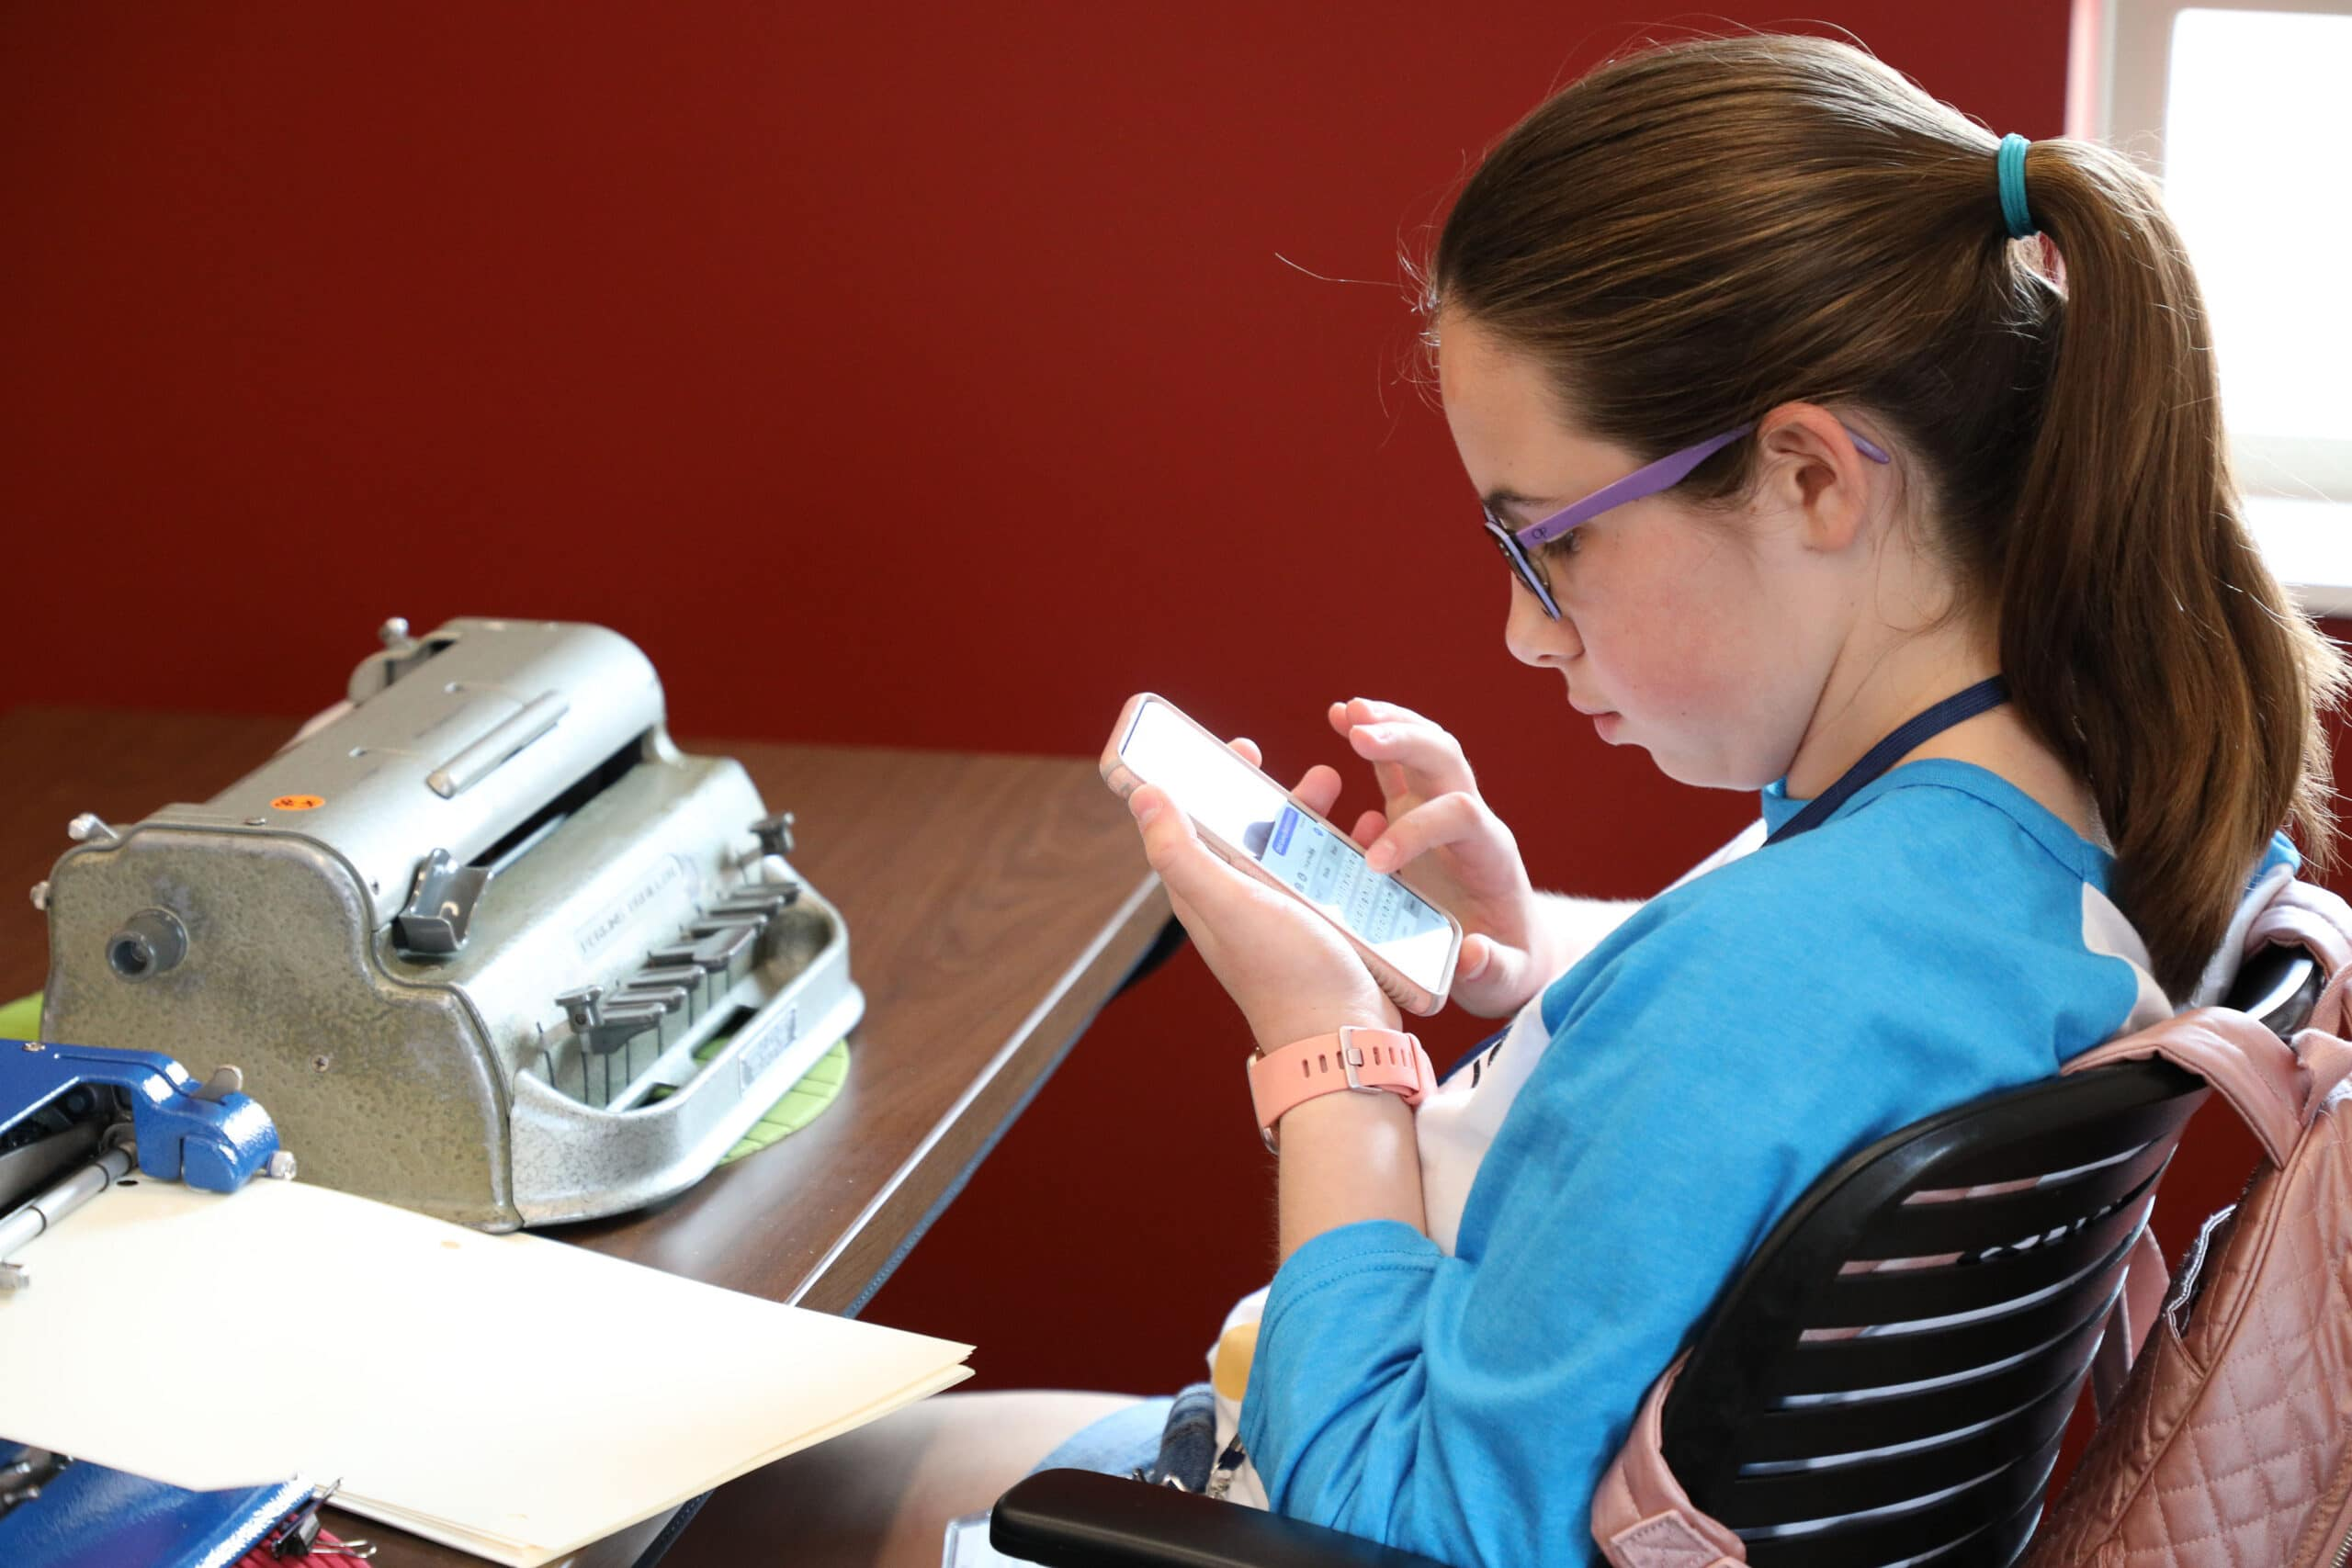 Female Braille Challenge finalist scrolling on iPhone with brailler on table infront of her.